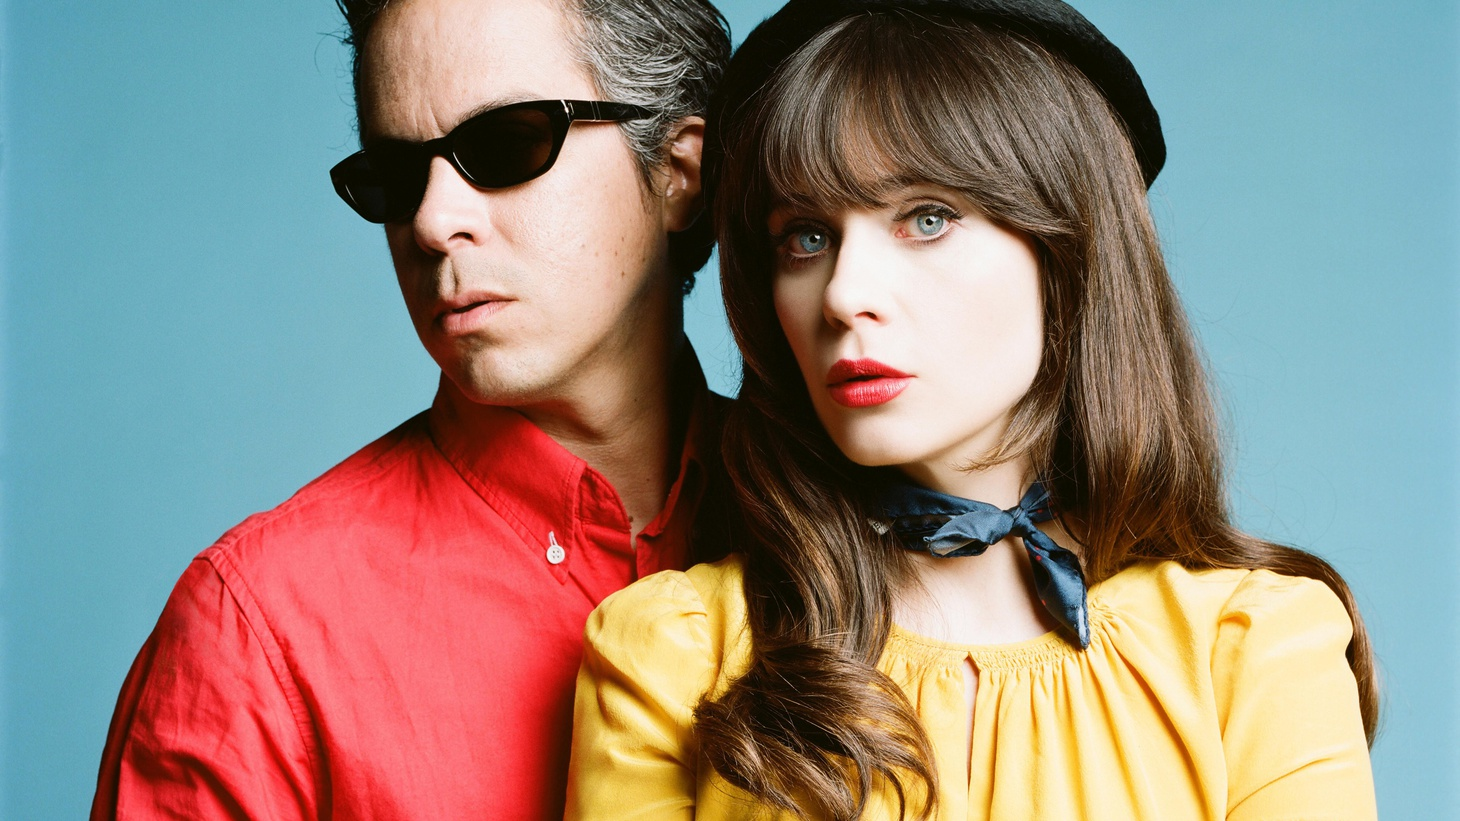 The third album from the musical collaboration She & Him features songs written by celebrated actress Zooey Deschanel and virtuosic producer M. Ward.